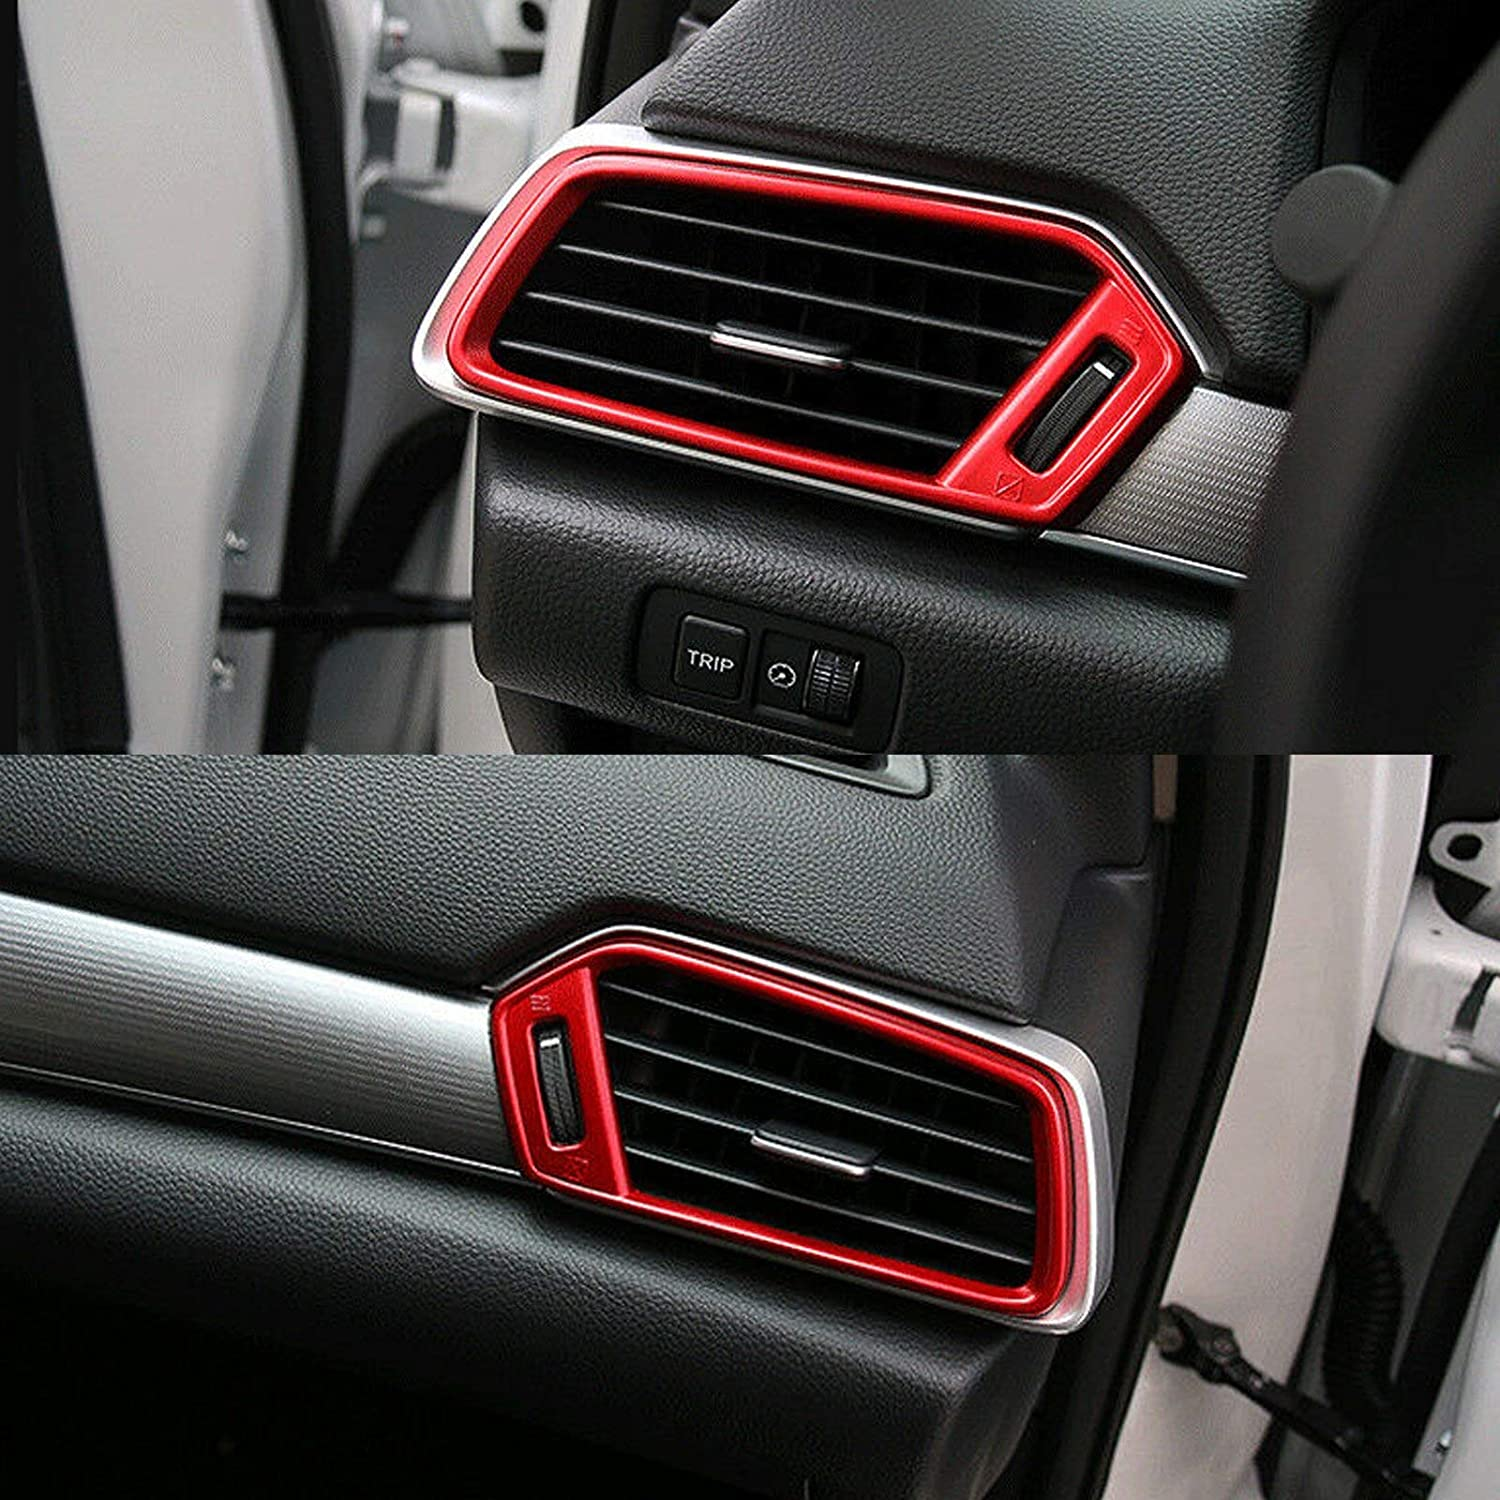 Xotic Tech for Honda Accord 2018 2019 Dashboard Air Vent AC Outlet Cover Frame Trim Red Interior Decoration